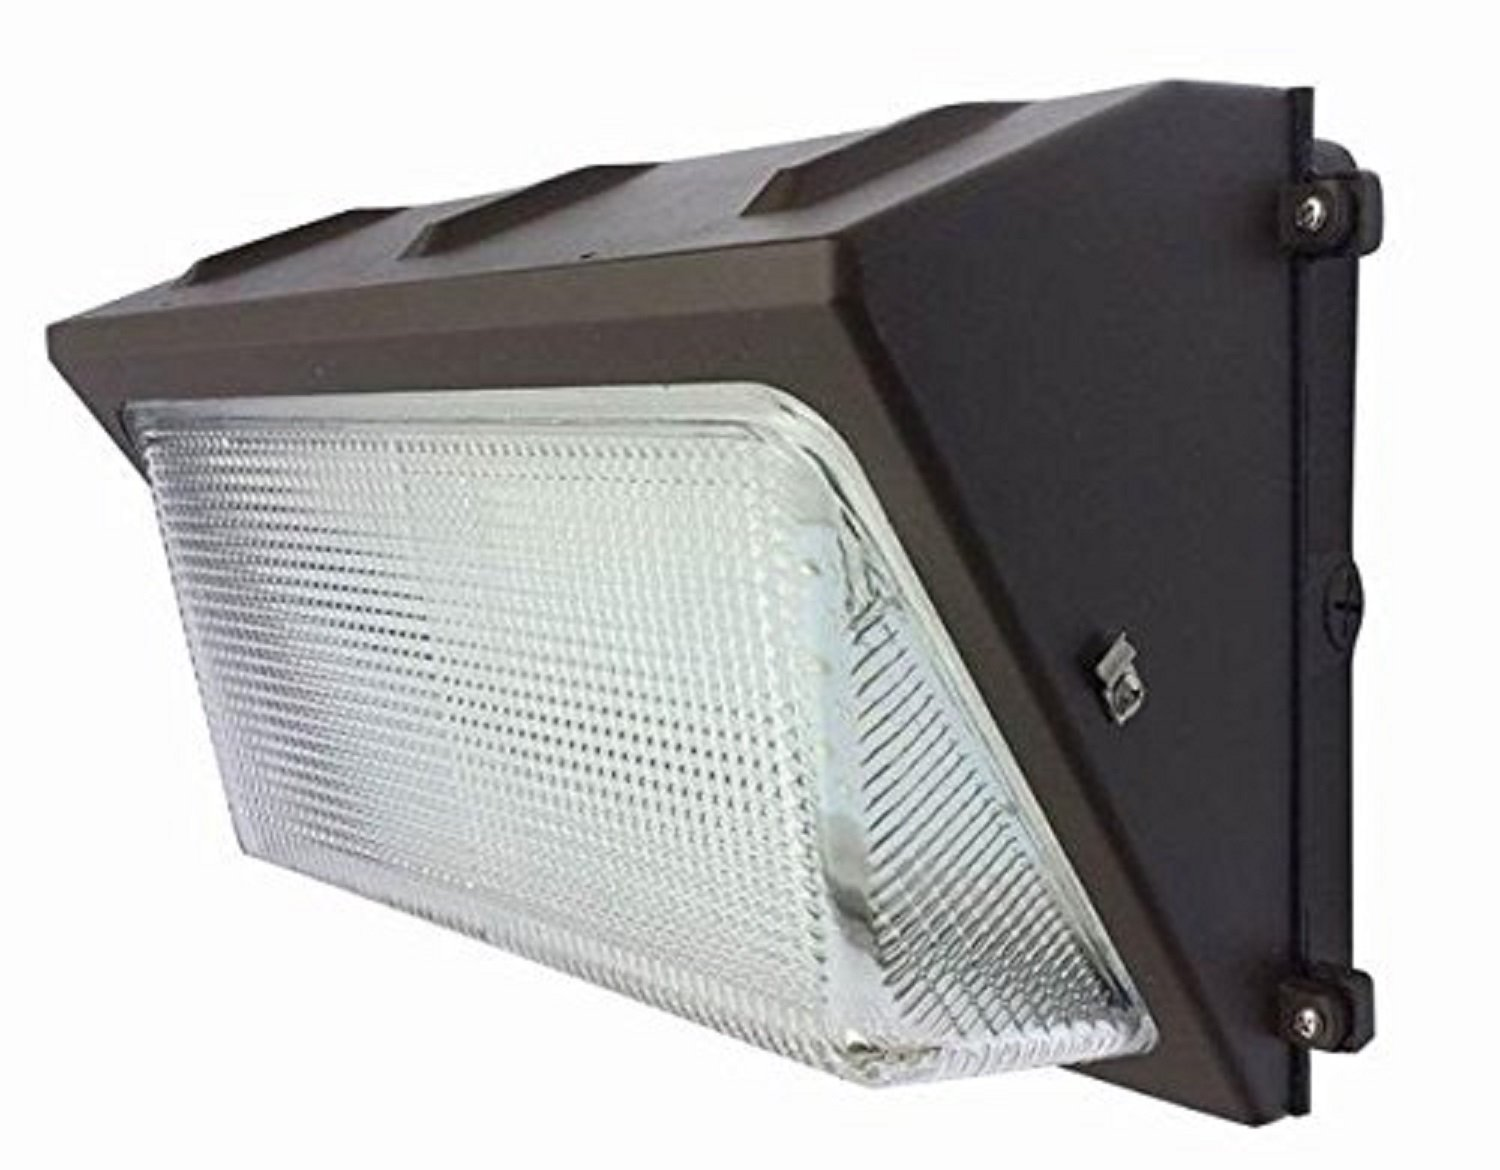 UL & DLC Listed- LED 120W Wall Pack Outdoor Lighting, 5000K Cool White, 11,000 Lumen, 800 Watt Equivalency Replacement, 50,000 Life Hours, HIGHEST Quality, Wall Light, Industrial, Commercial